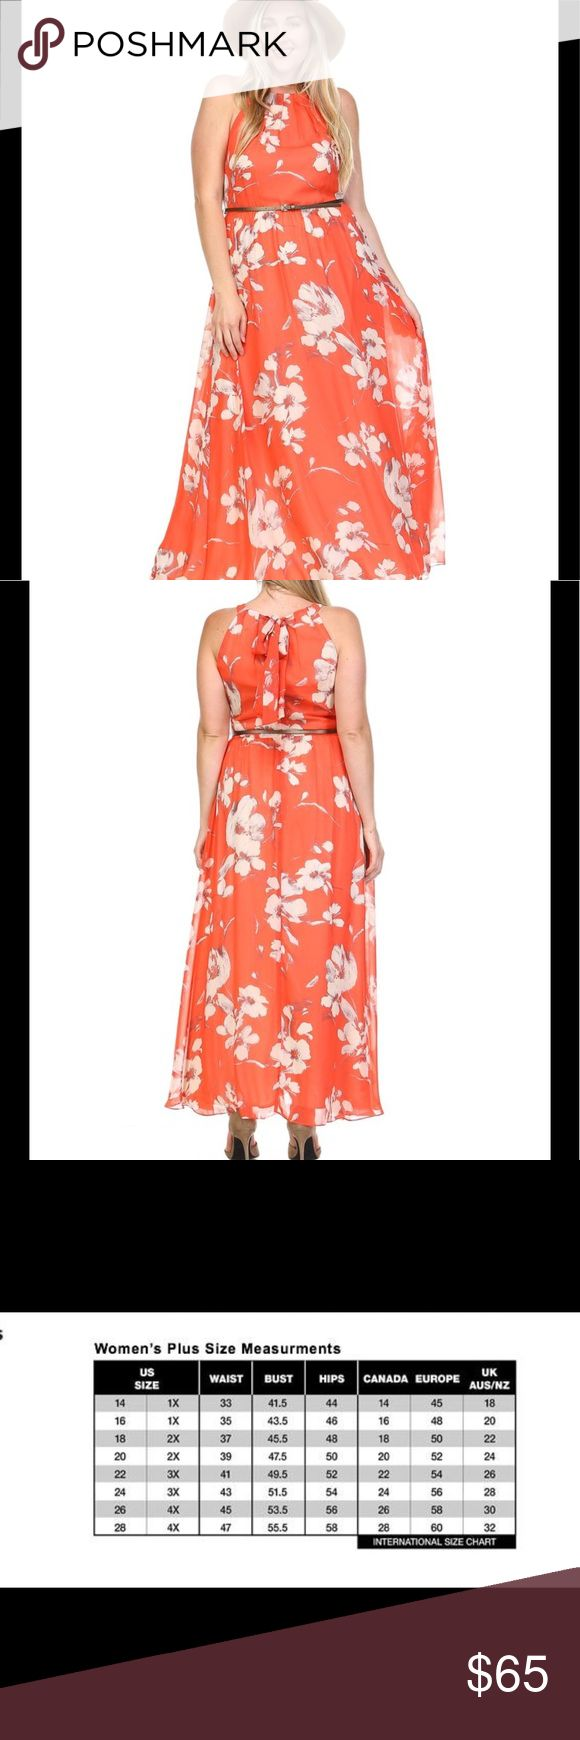 Belted Floral Maxi Dress Belted floral maxi dress. 100% polyester. Model is wearing a size 14. Dresses Maxi